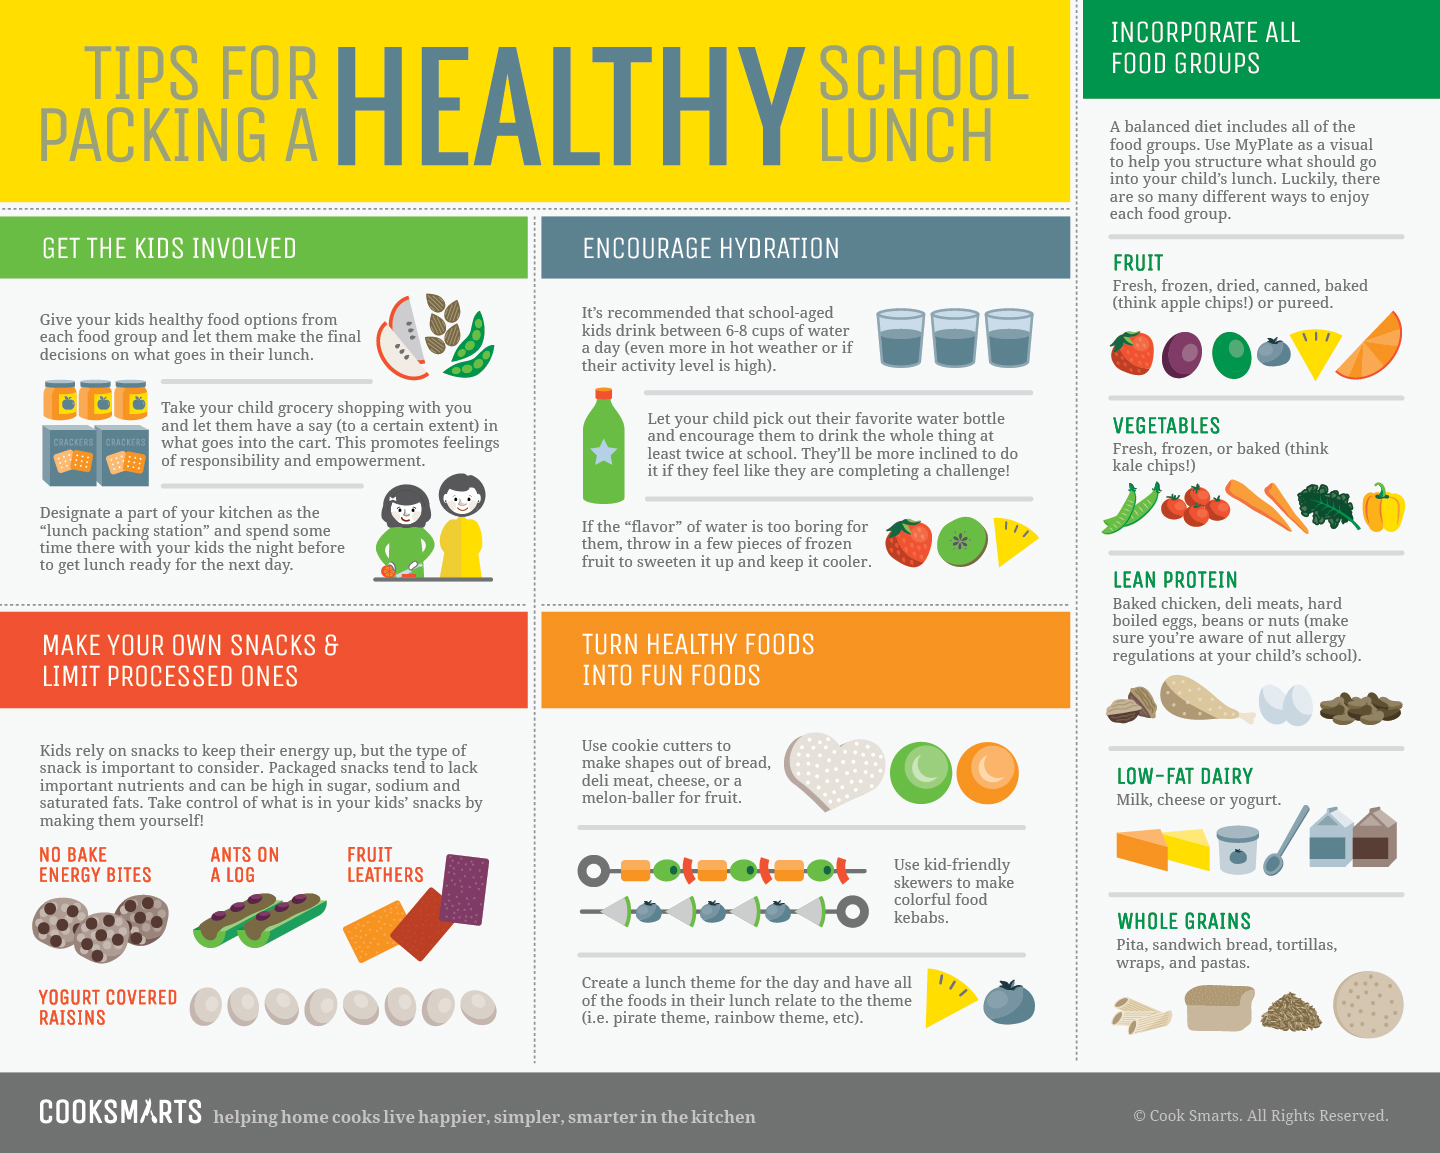 5 Tips For Packing A Healthy School Lunch